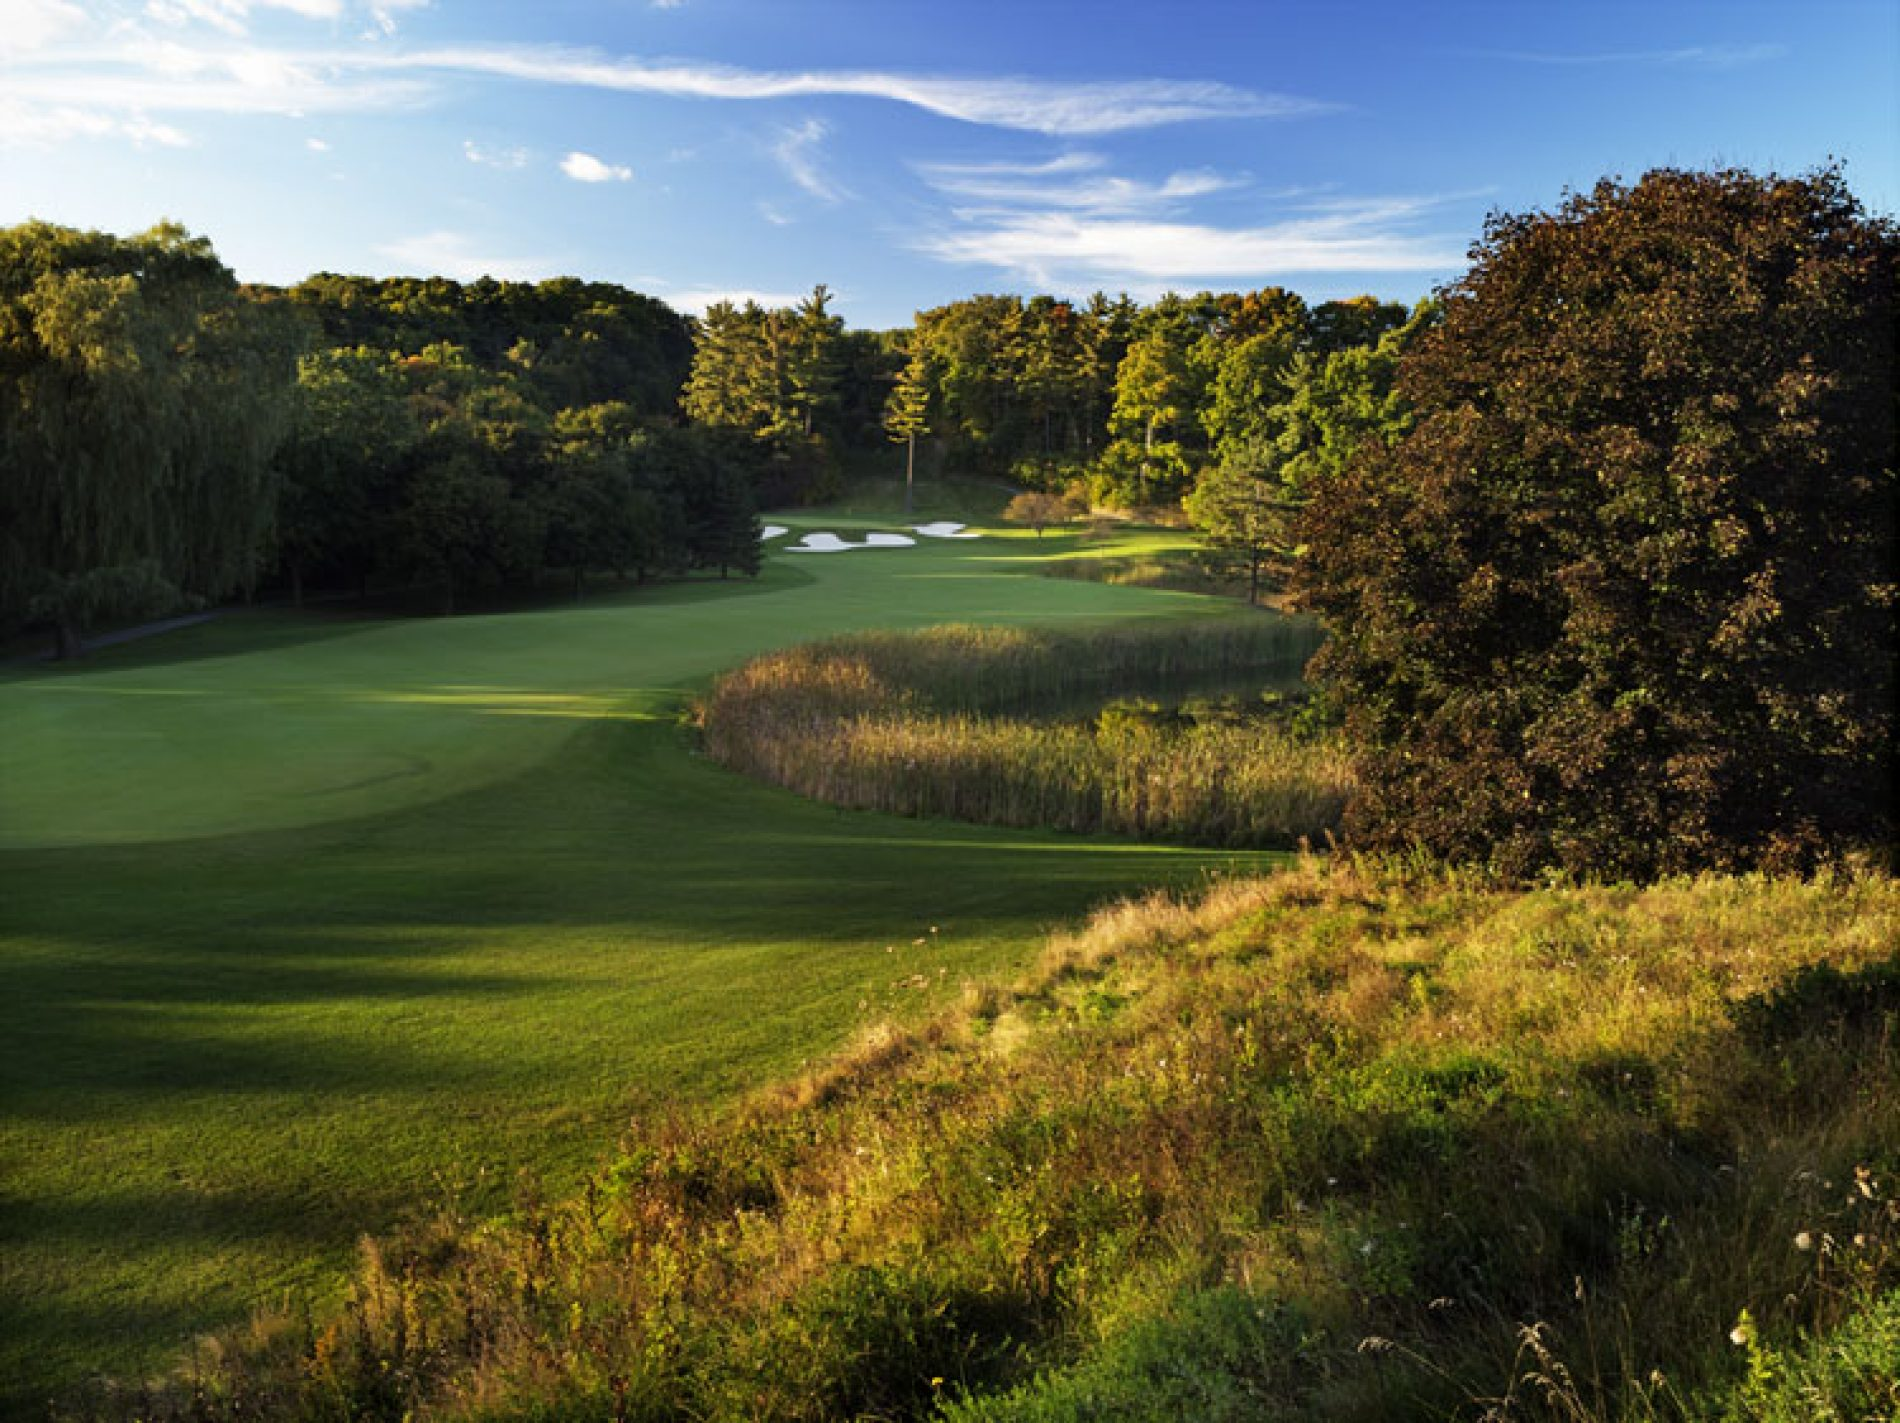 The National Golf Club of Canada – Woodbridge, Ontario